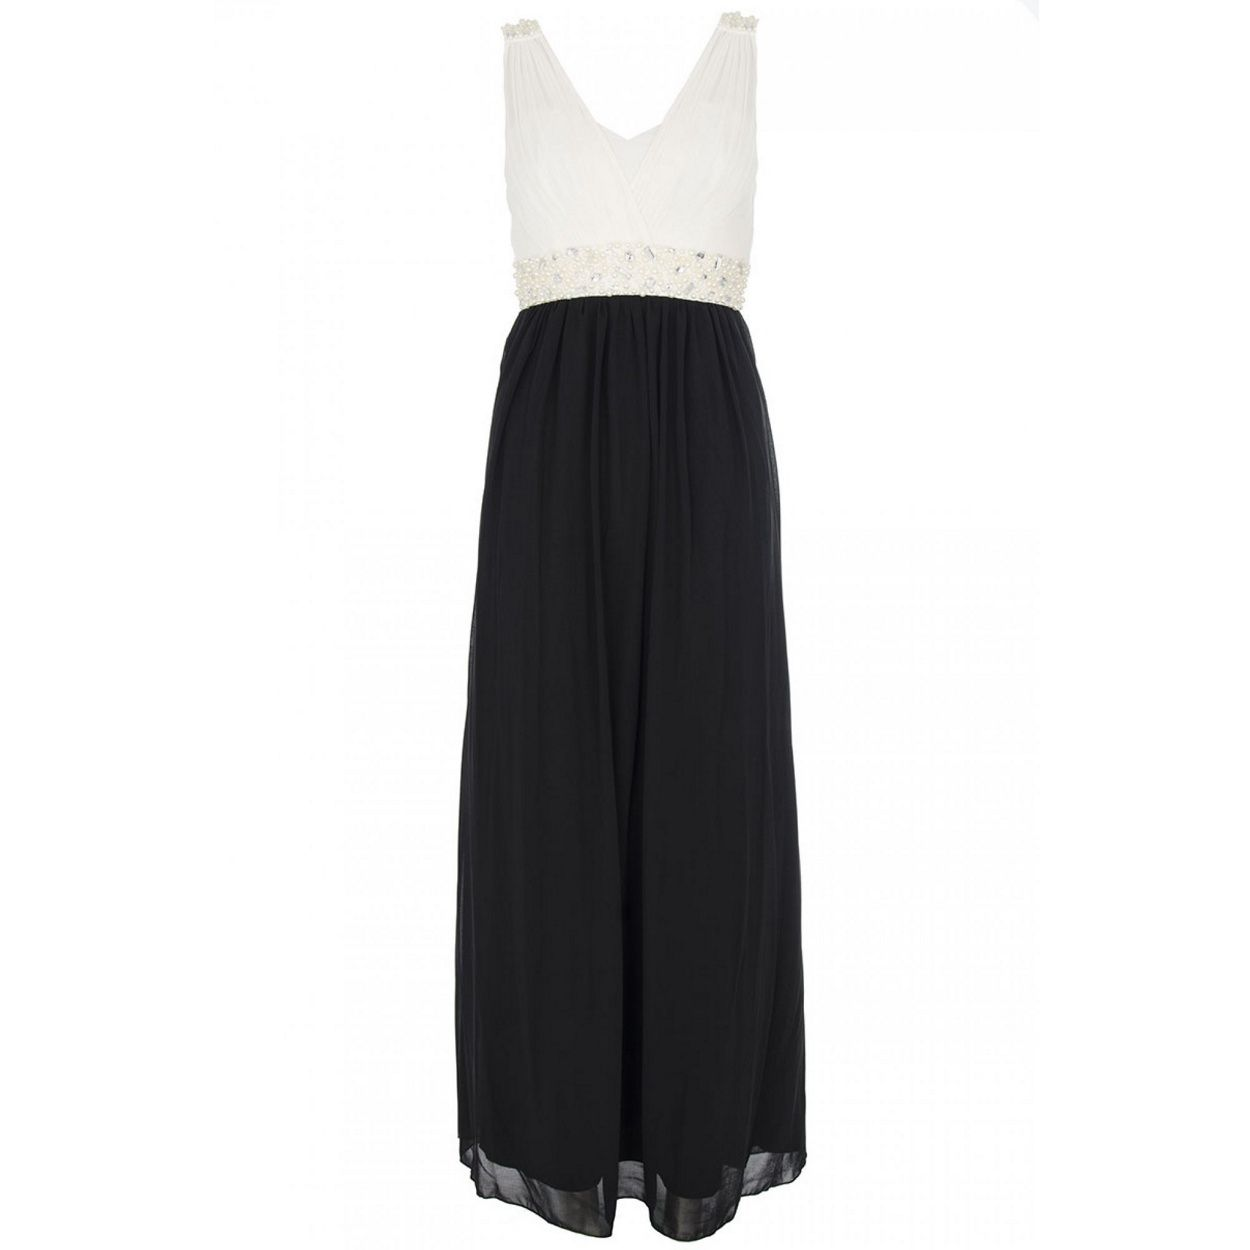 Quiz black chiffon pearl maxi dress at debenhams wedding